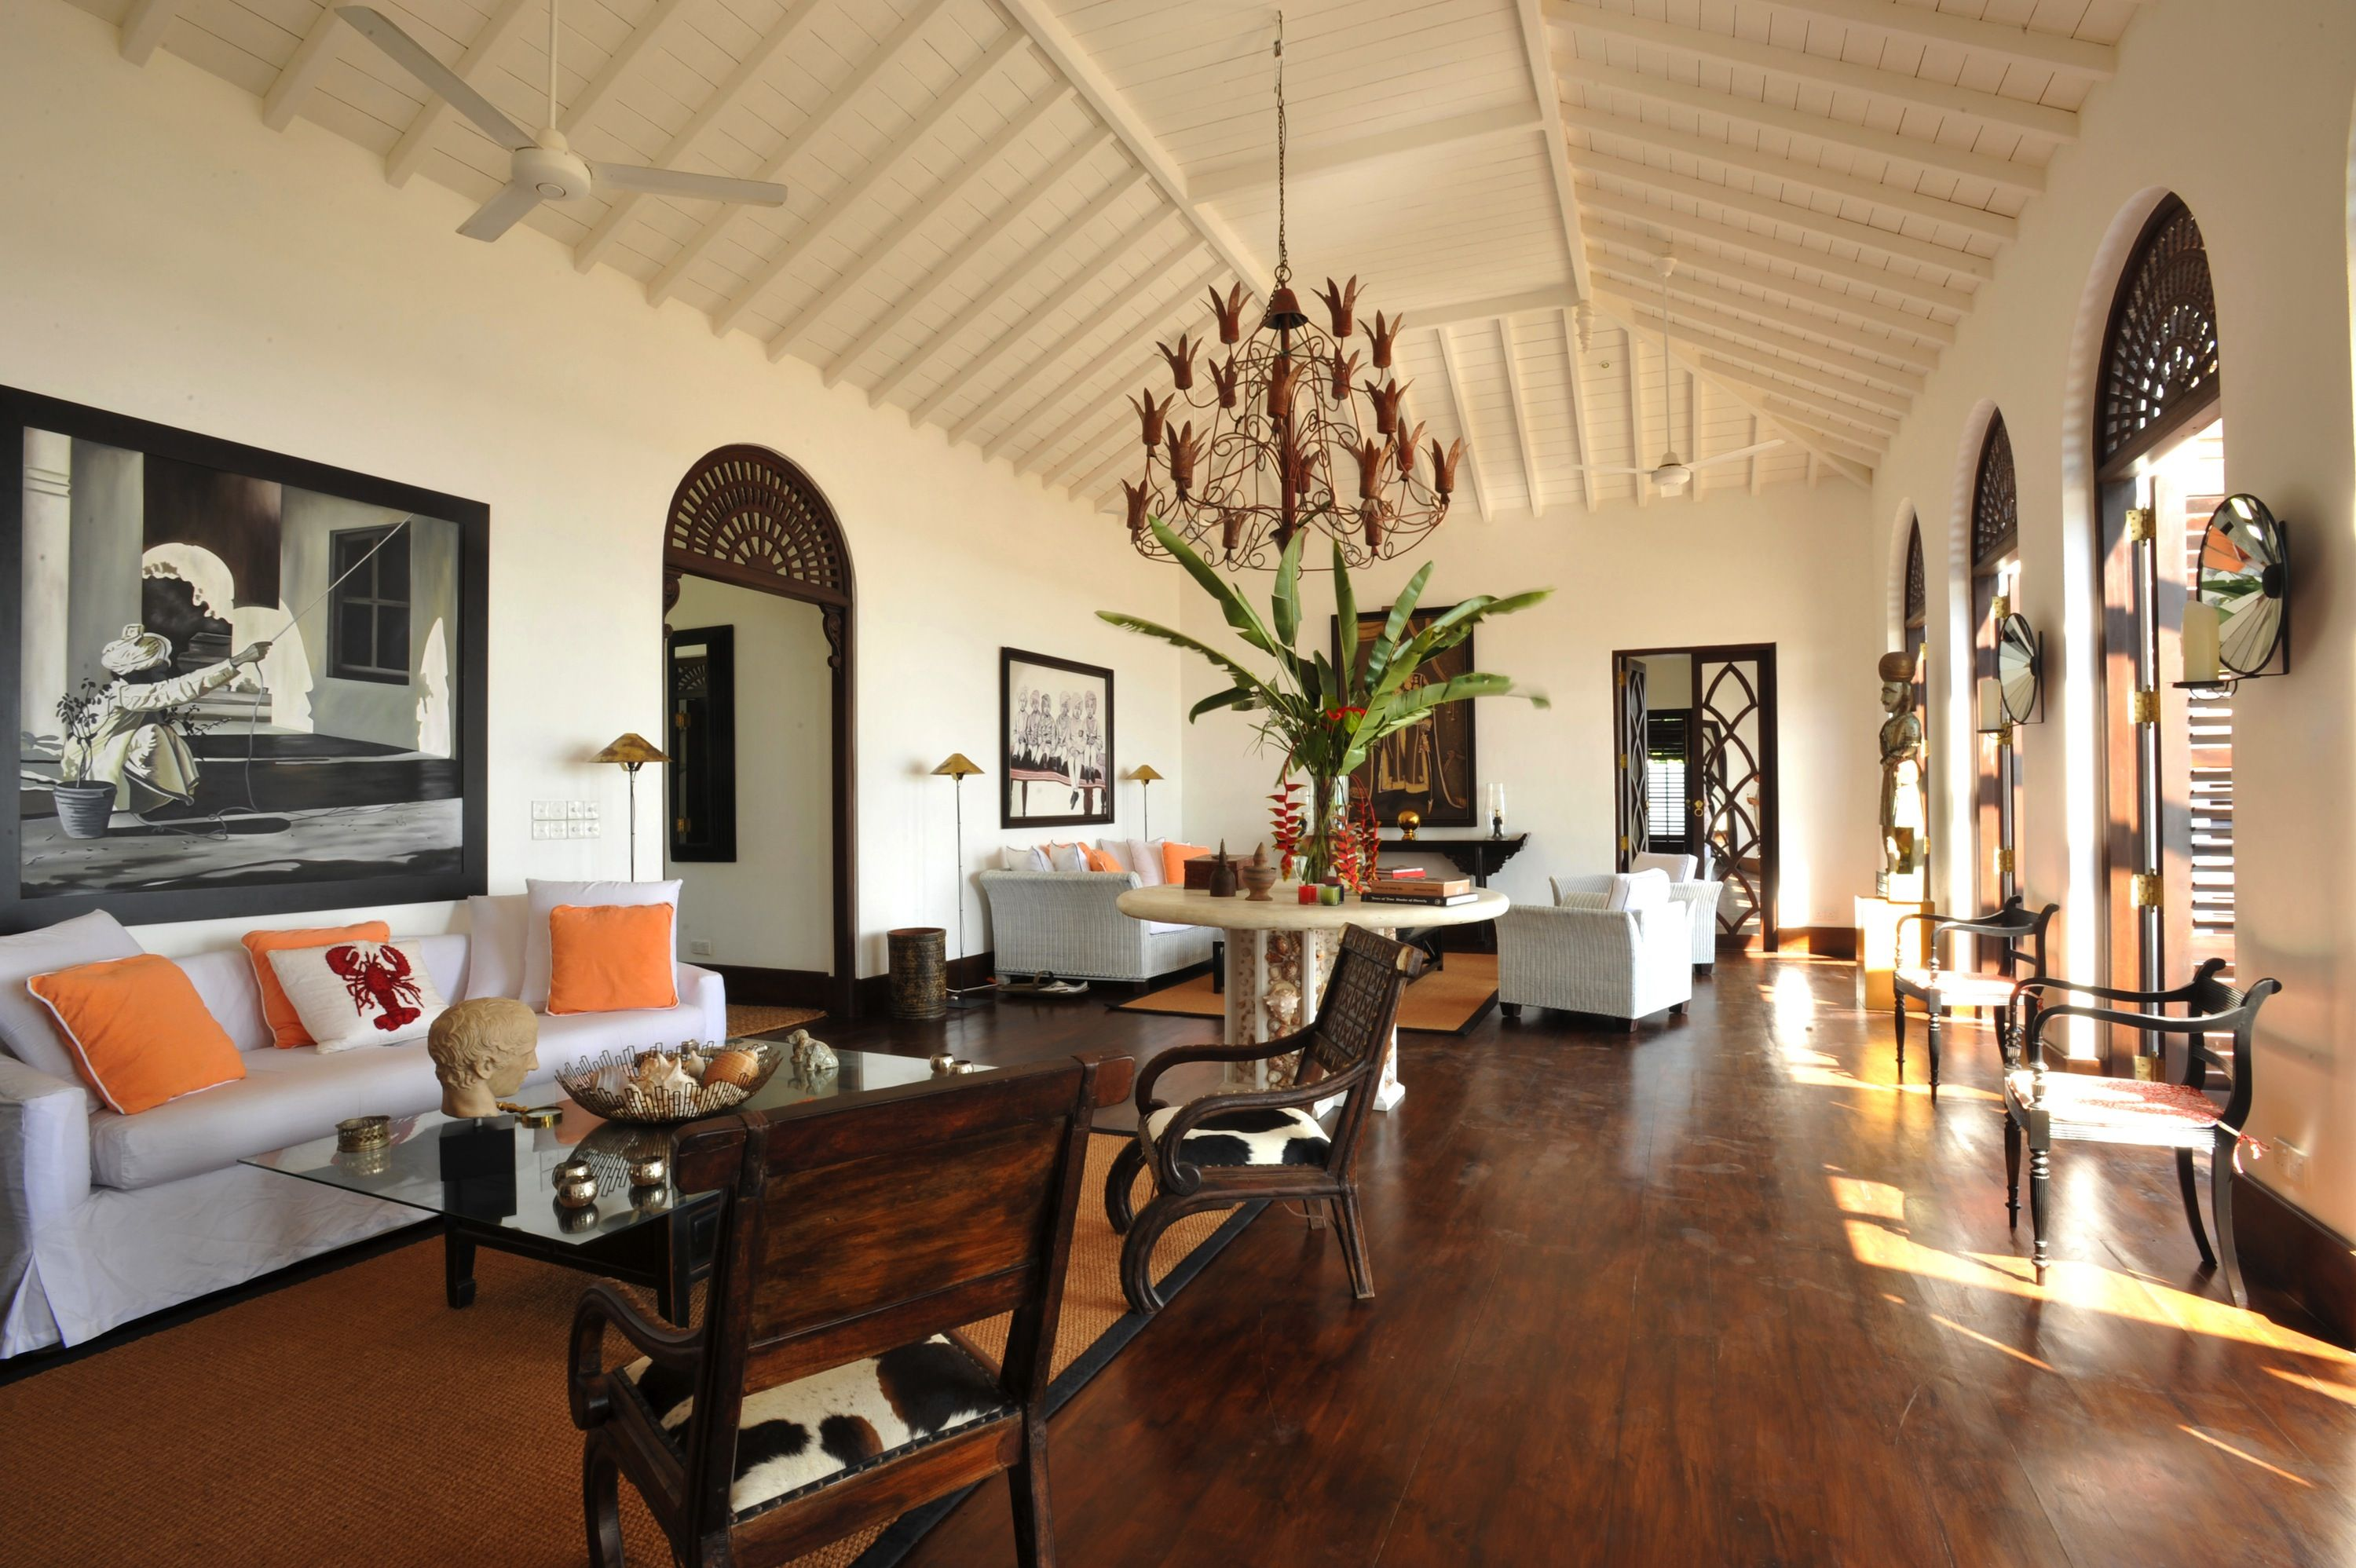 Michael La Rocca and Jack Kelly's Sri Lankan vacation home ...